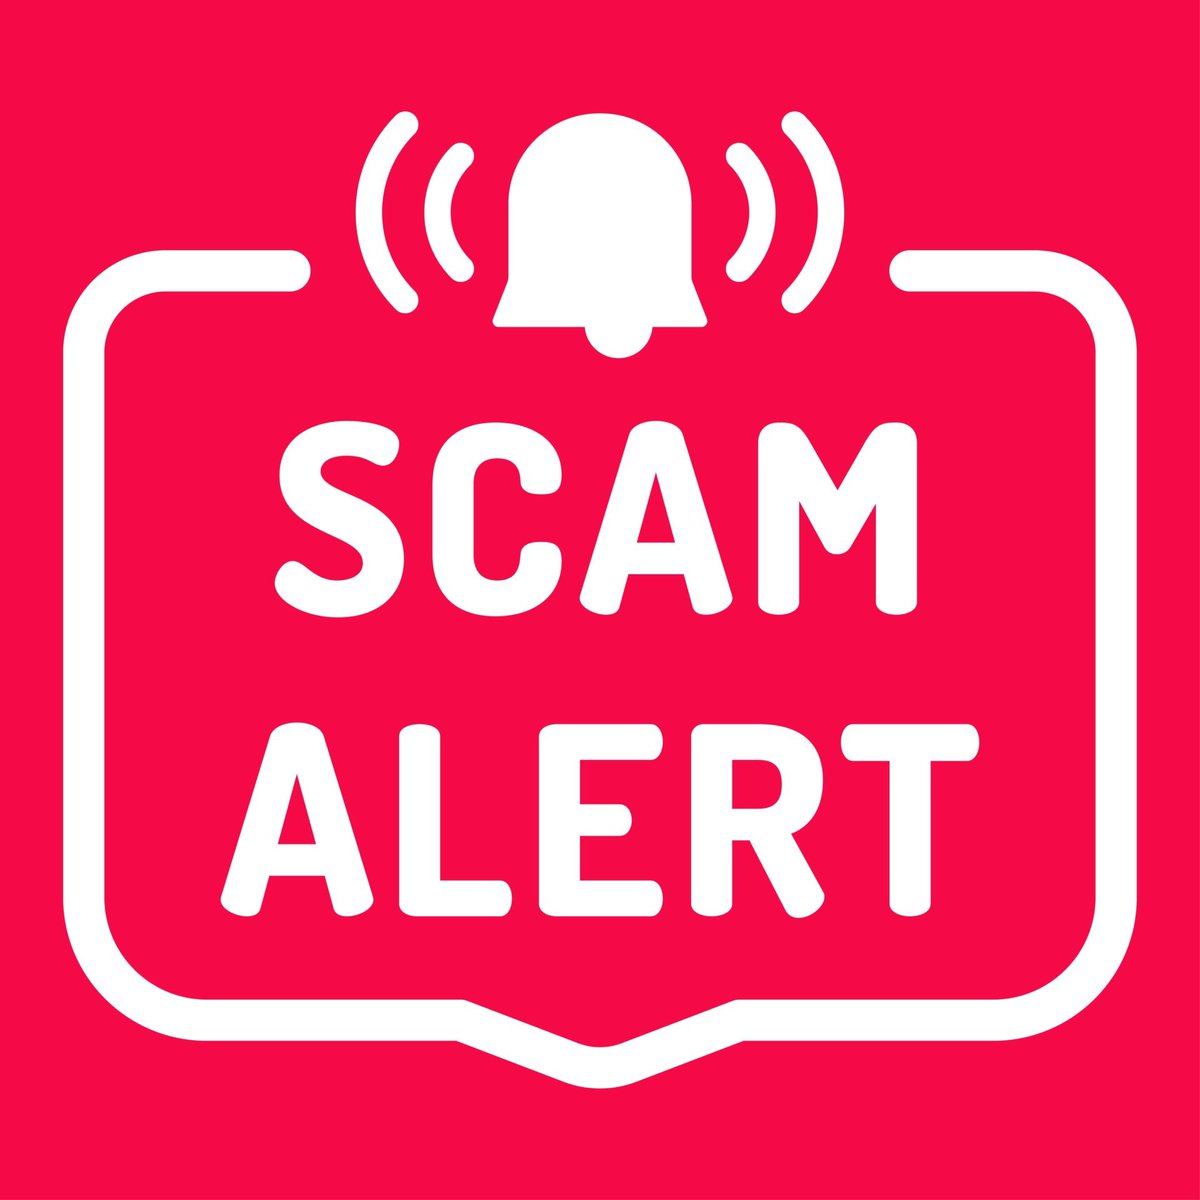 SCAM ALERT: SMUD is not shutting off power for non-payment. A few customers have reported calls demanding immediate payment and threatening to shut-off power during the heat wave. We will never do that. Learn how to protect yourselves at https://t.co/lQXWbiP1rr https://t.co/CqyiutLB7X